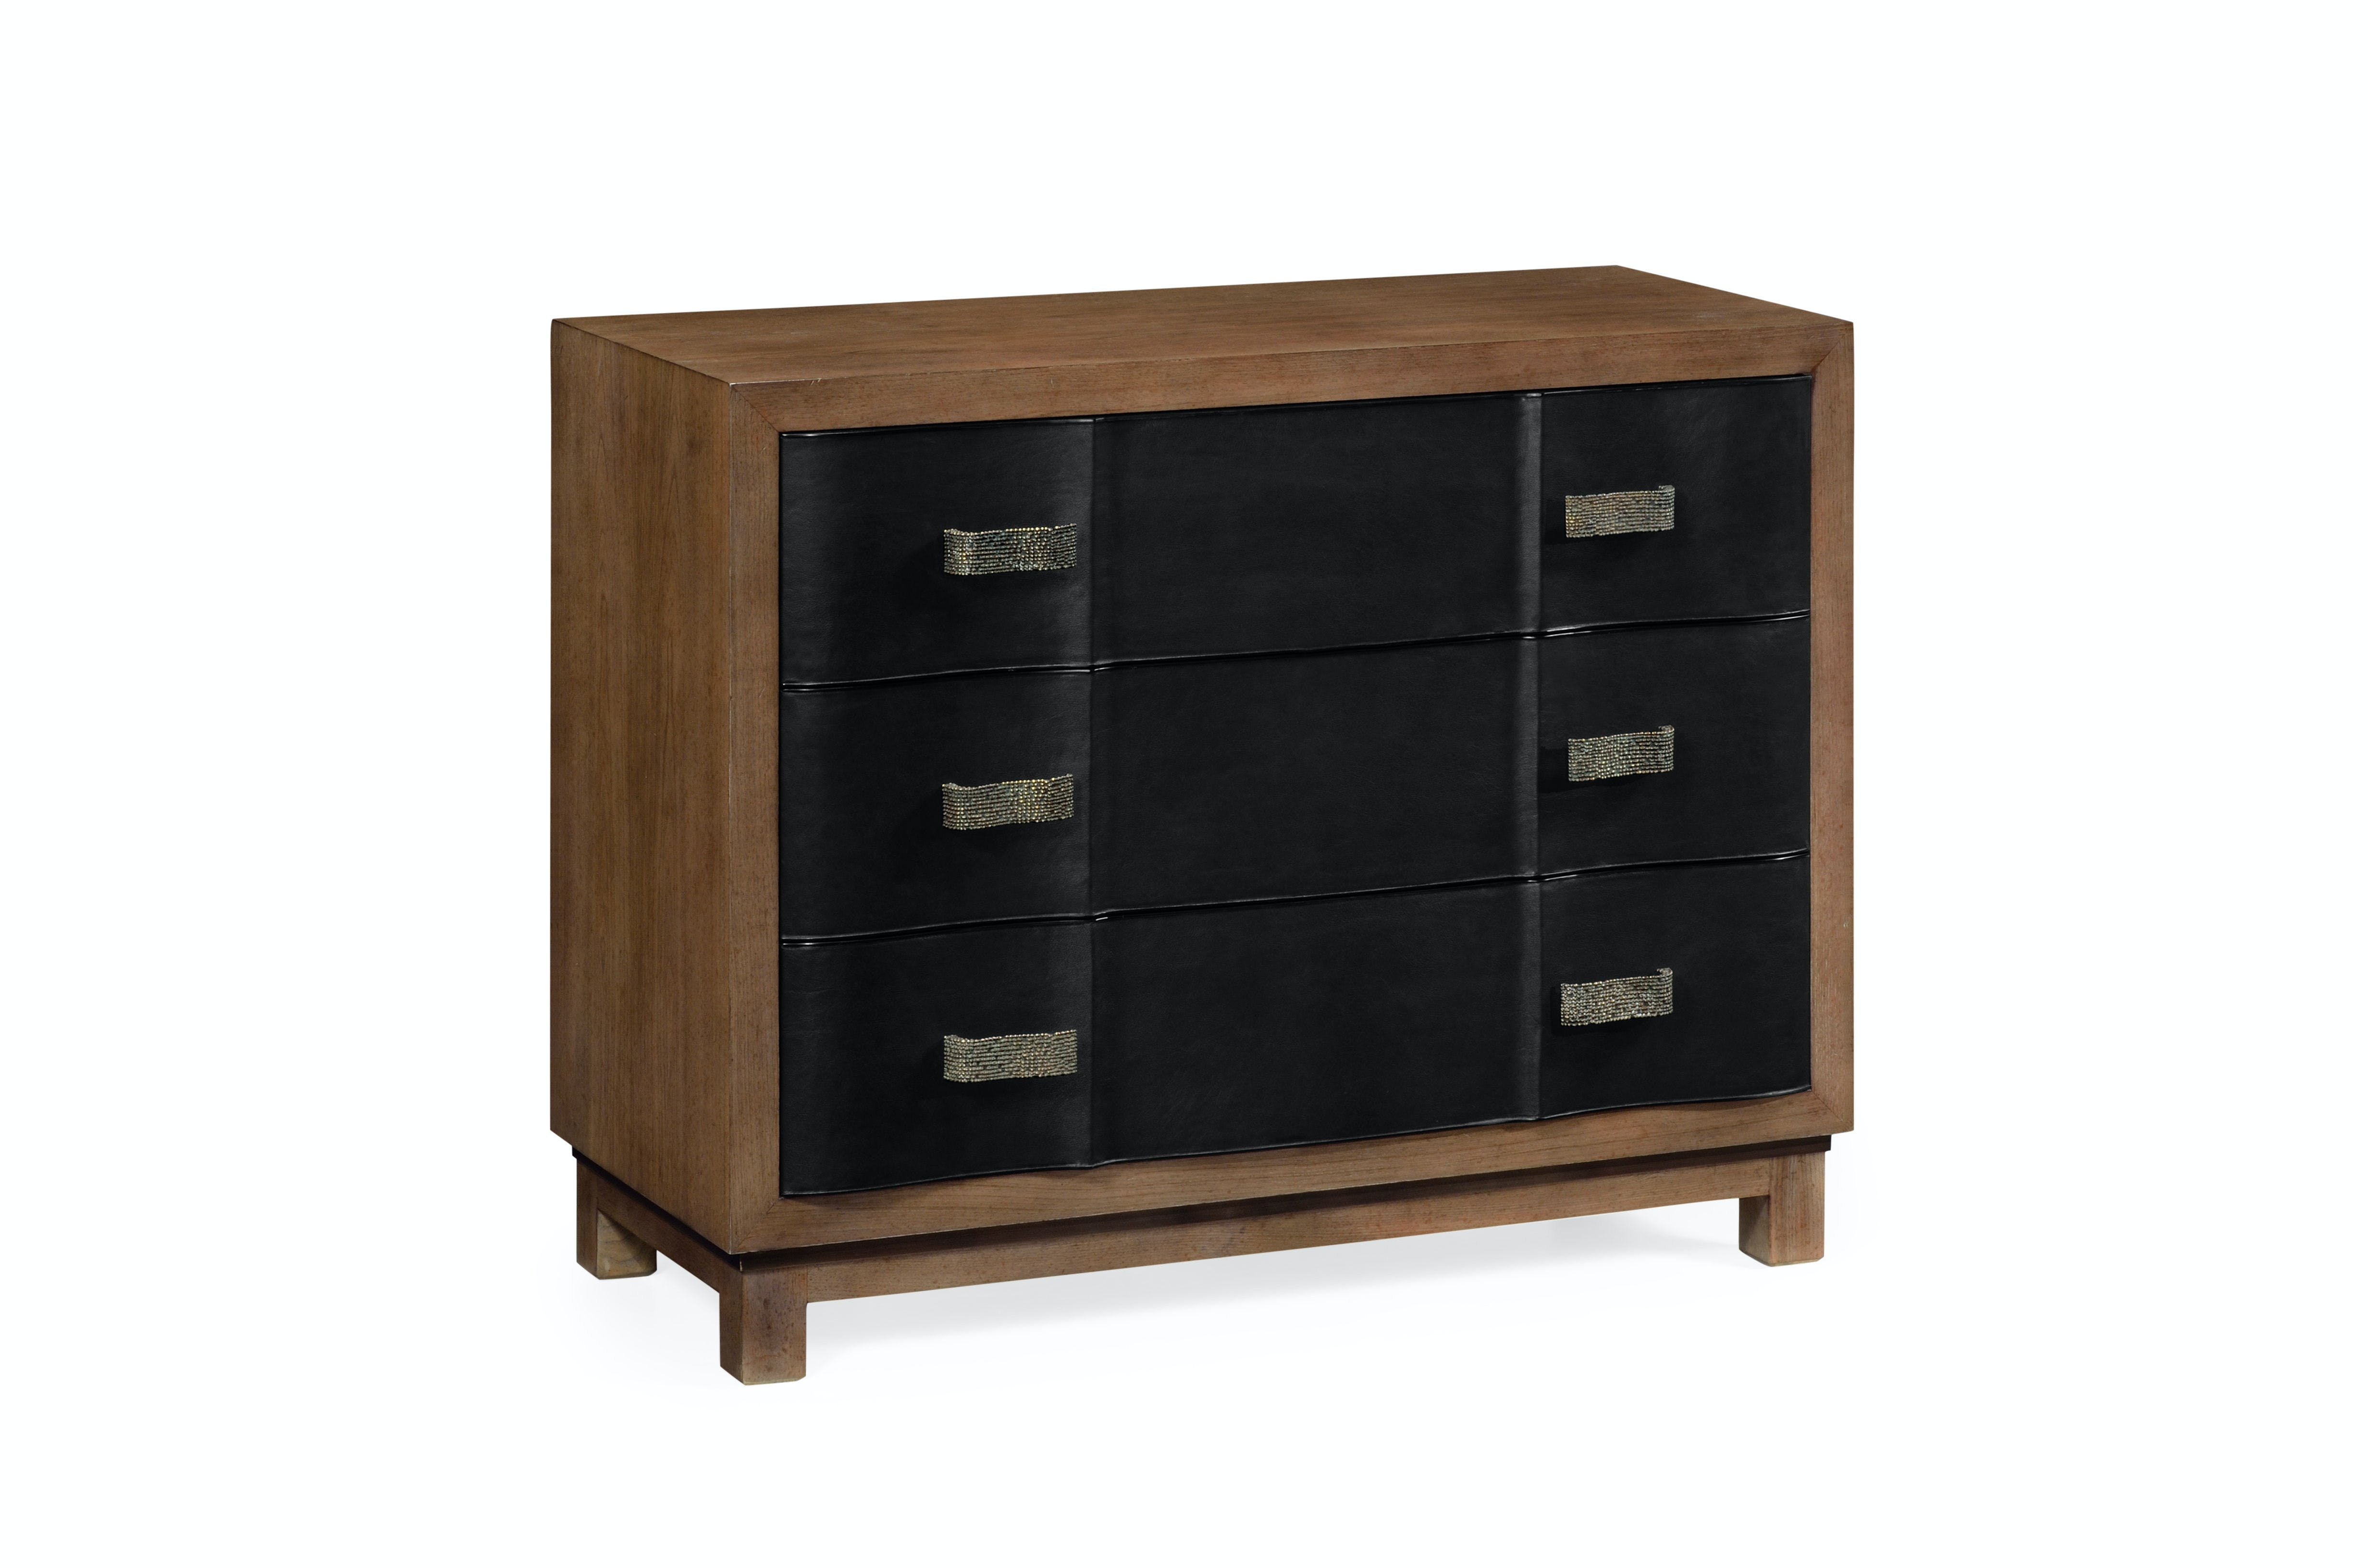 Jonathan Charles Bedroom Black Leather Inlaid Chest Of Drawers Qj495670mgc Walter E Smithe Furniture Design